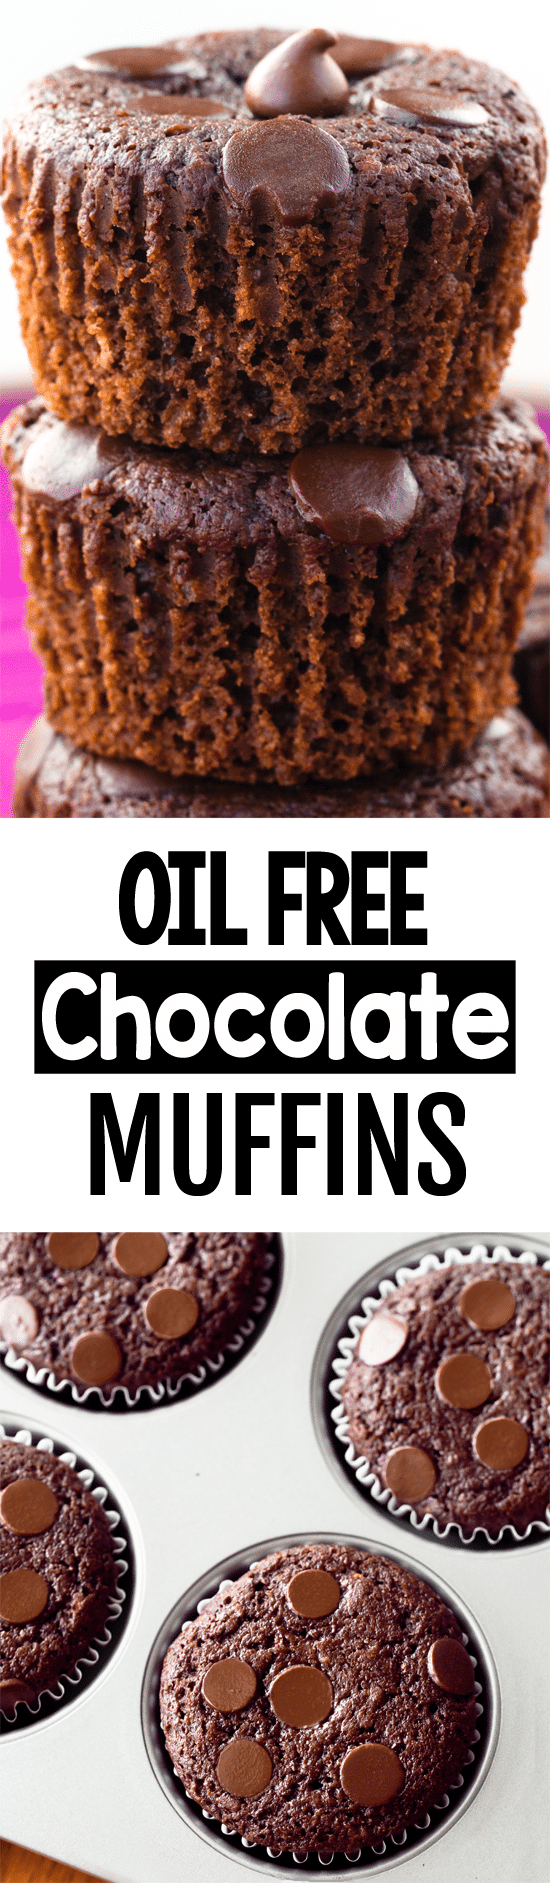 How To Make Healthy Low Fat Oil Free Chocolate Muffins